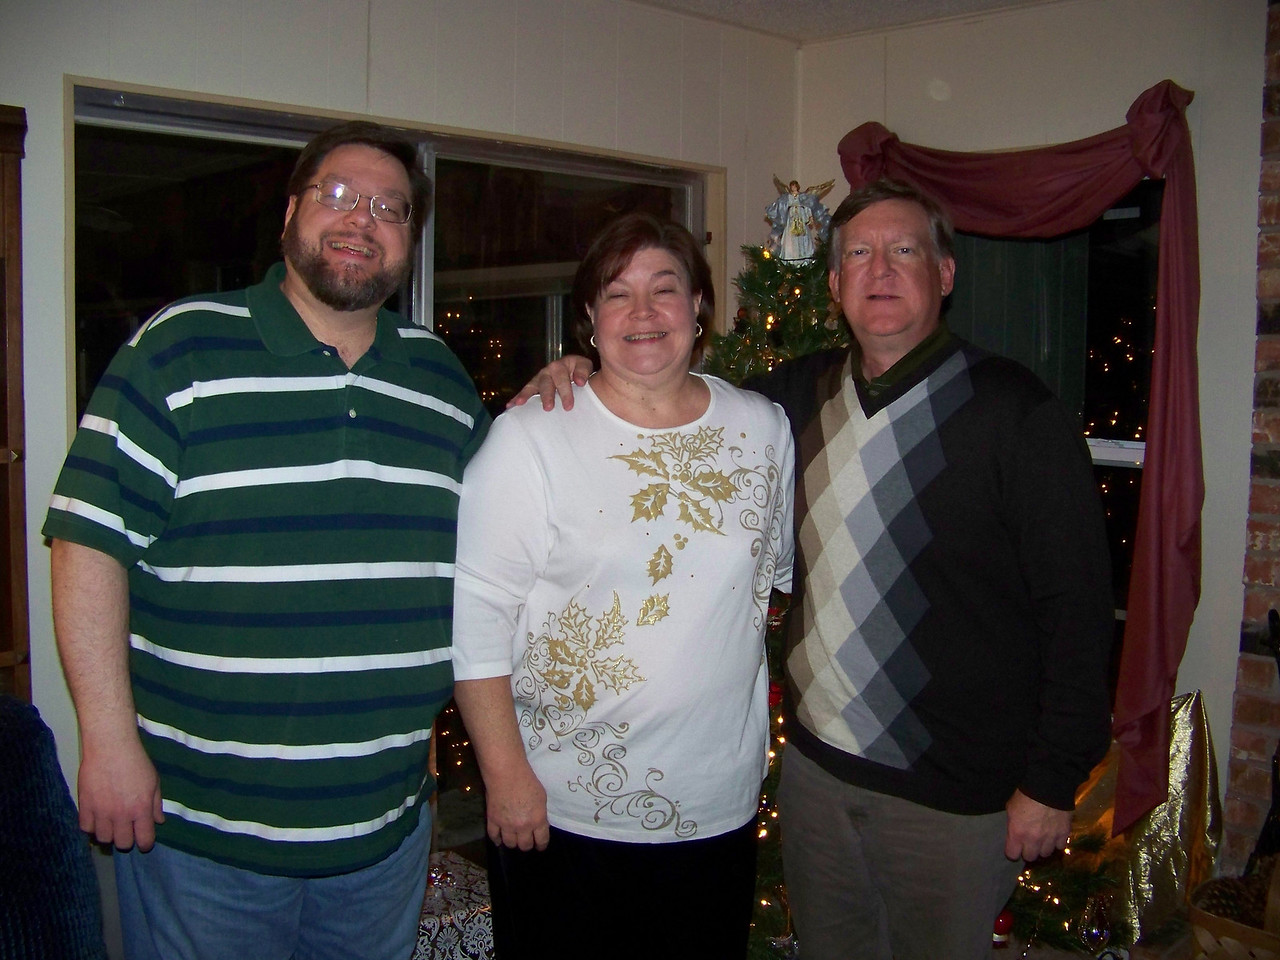 The Triesch kids:  Jon, Wendy and Mark.